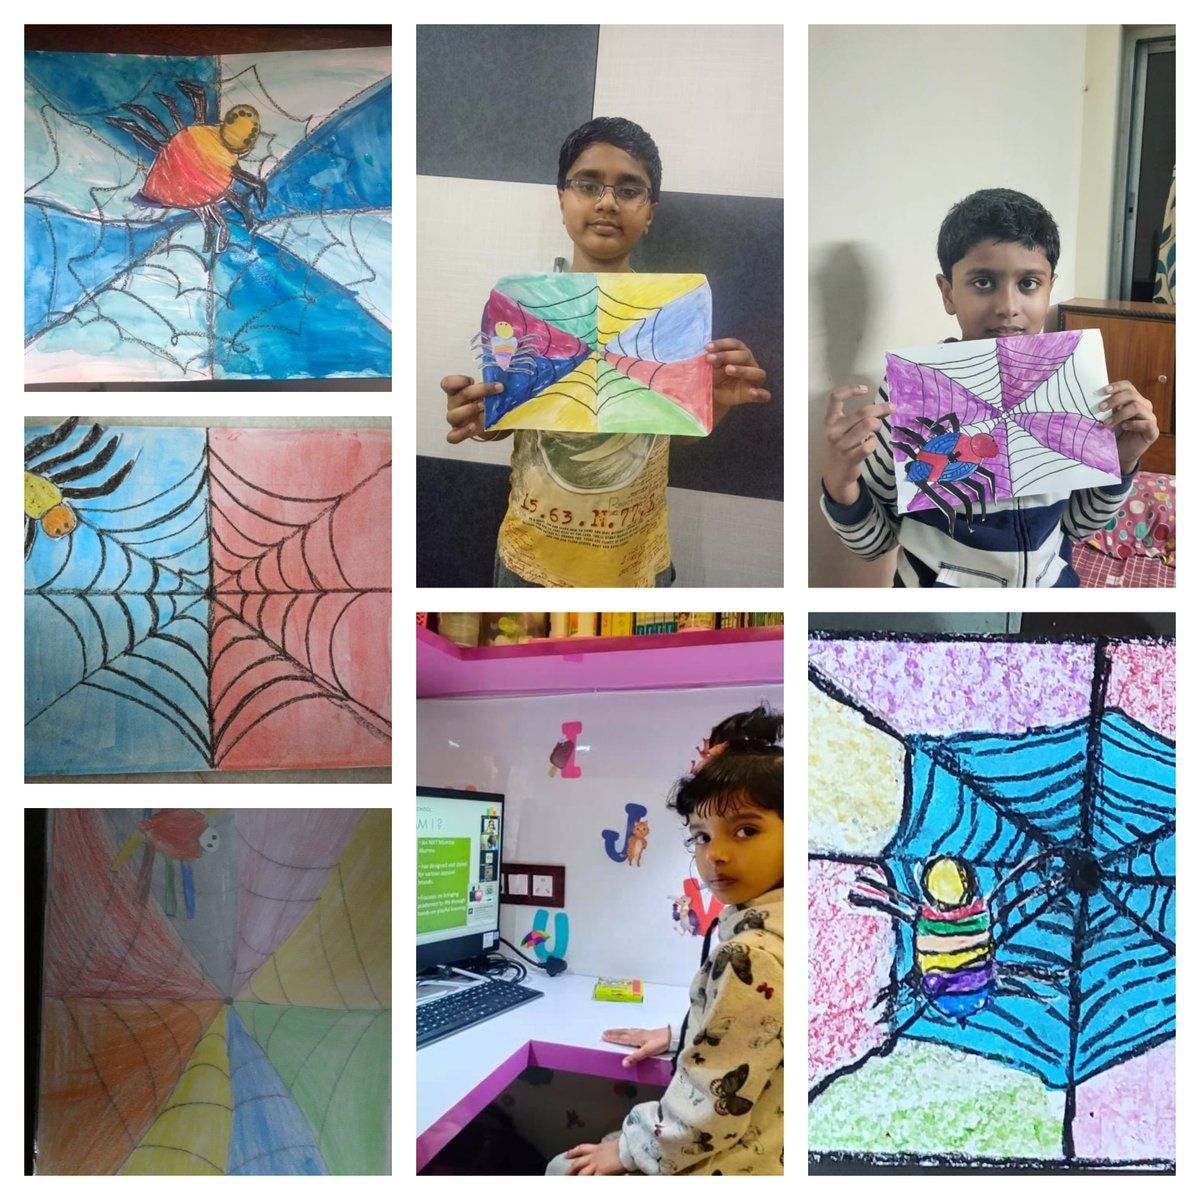 Wonderful submissions from yesterday's superhour class- Life Cycle Of A Spider by Lavina Chugh.  To join our free evening live interactive classes, make sure to join our whatsApp group -> https://t.co/mZOTpLZXzG  #interactivesession #podiumschool #learning #freeclasses https://t.co/9SSMaNlbJG